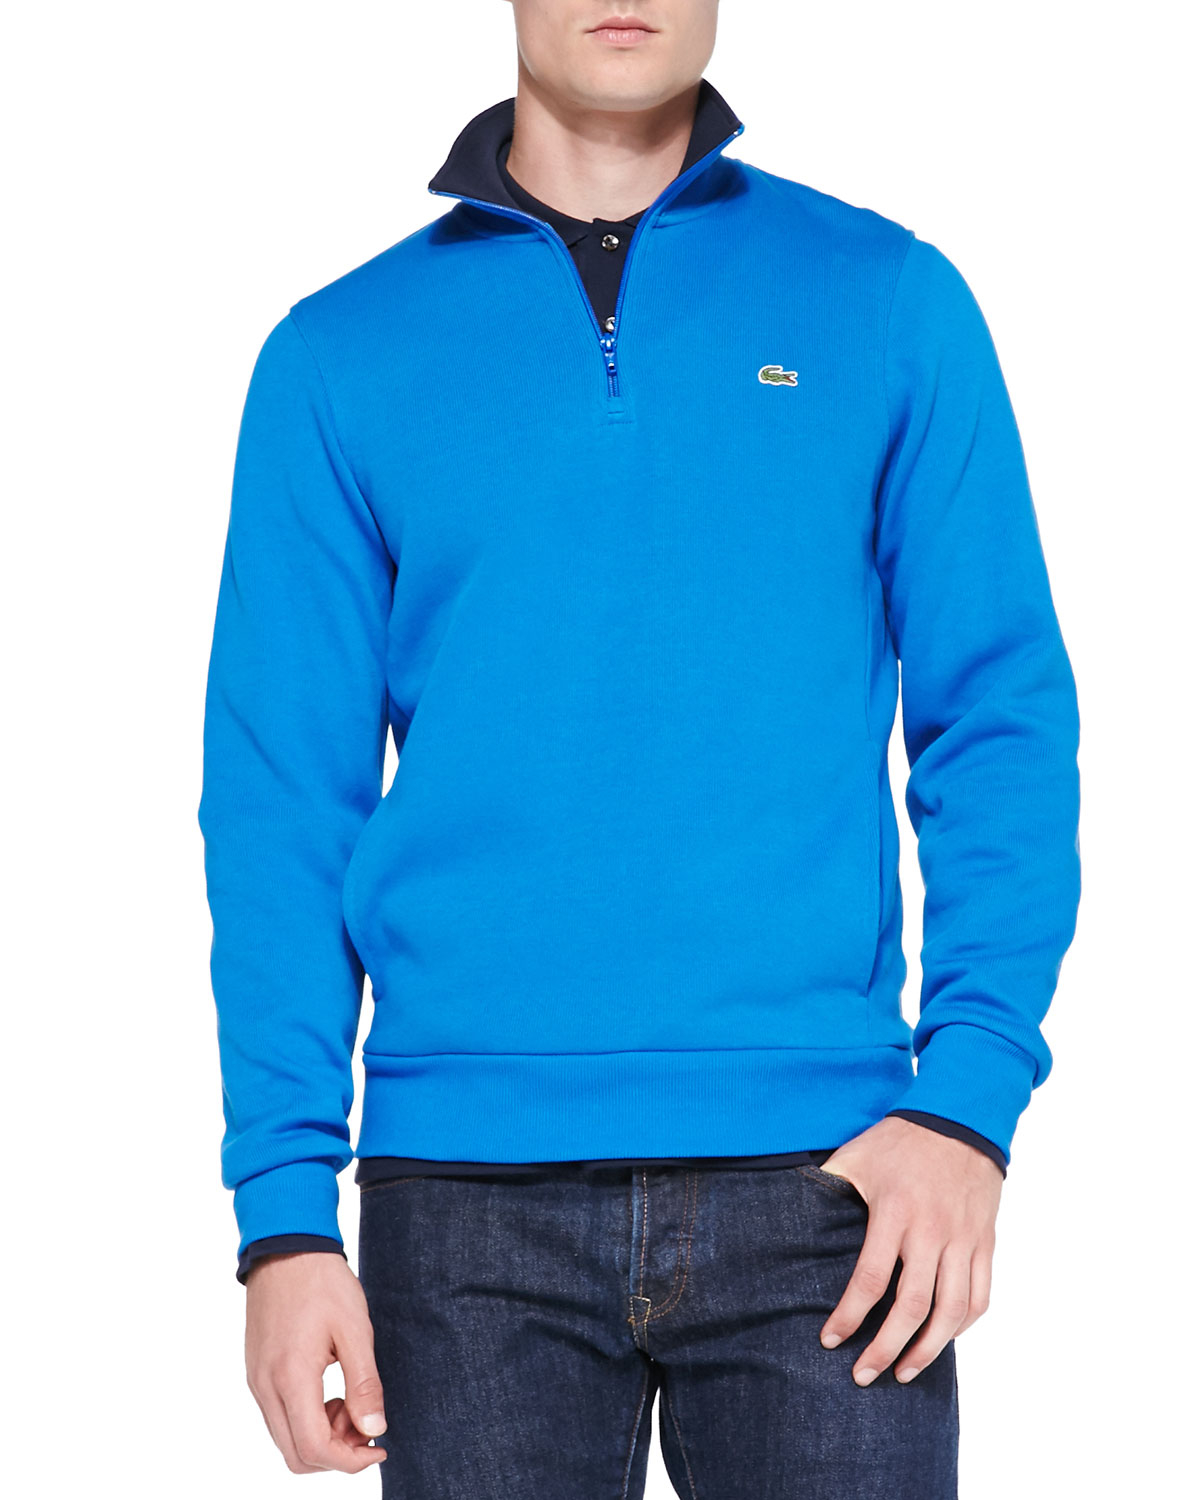 lacoste half zip pullover sweatshirt in blue for men lyst. Black Bedroom Furniture Sets. Home Design Ideas